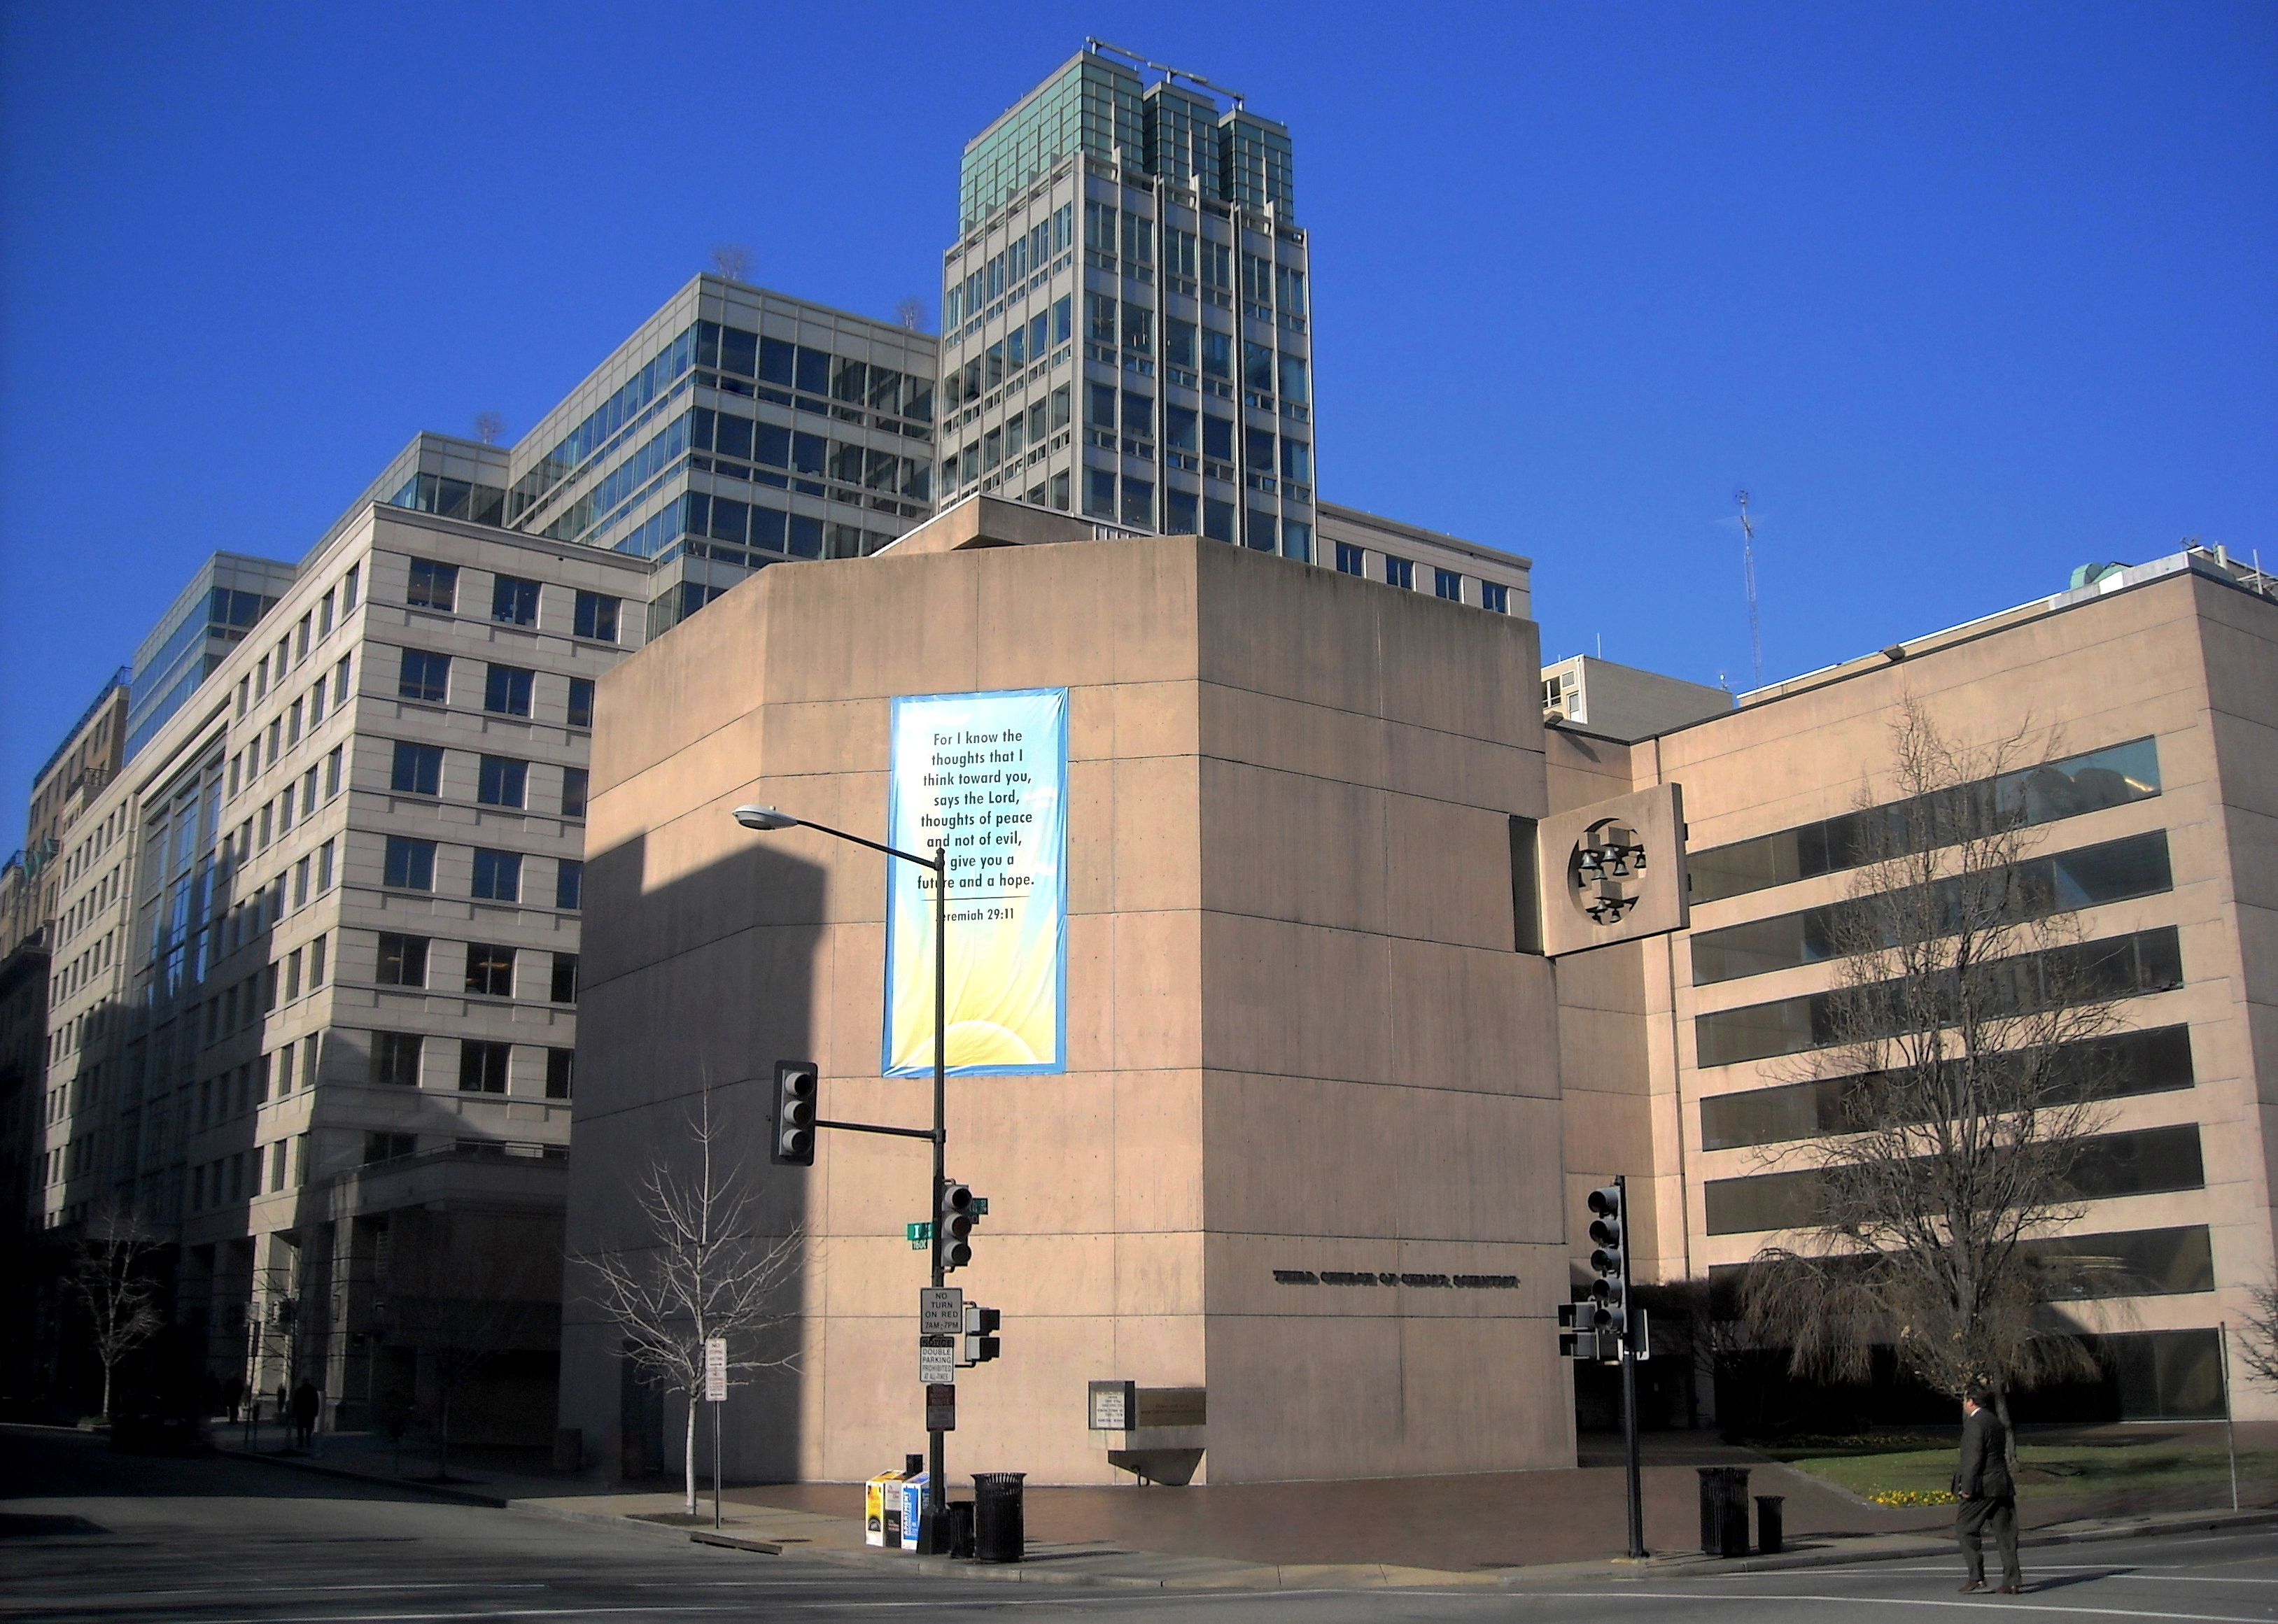 Third Church of Christ, Scientist - Washington, D.C..JPG